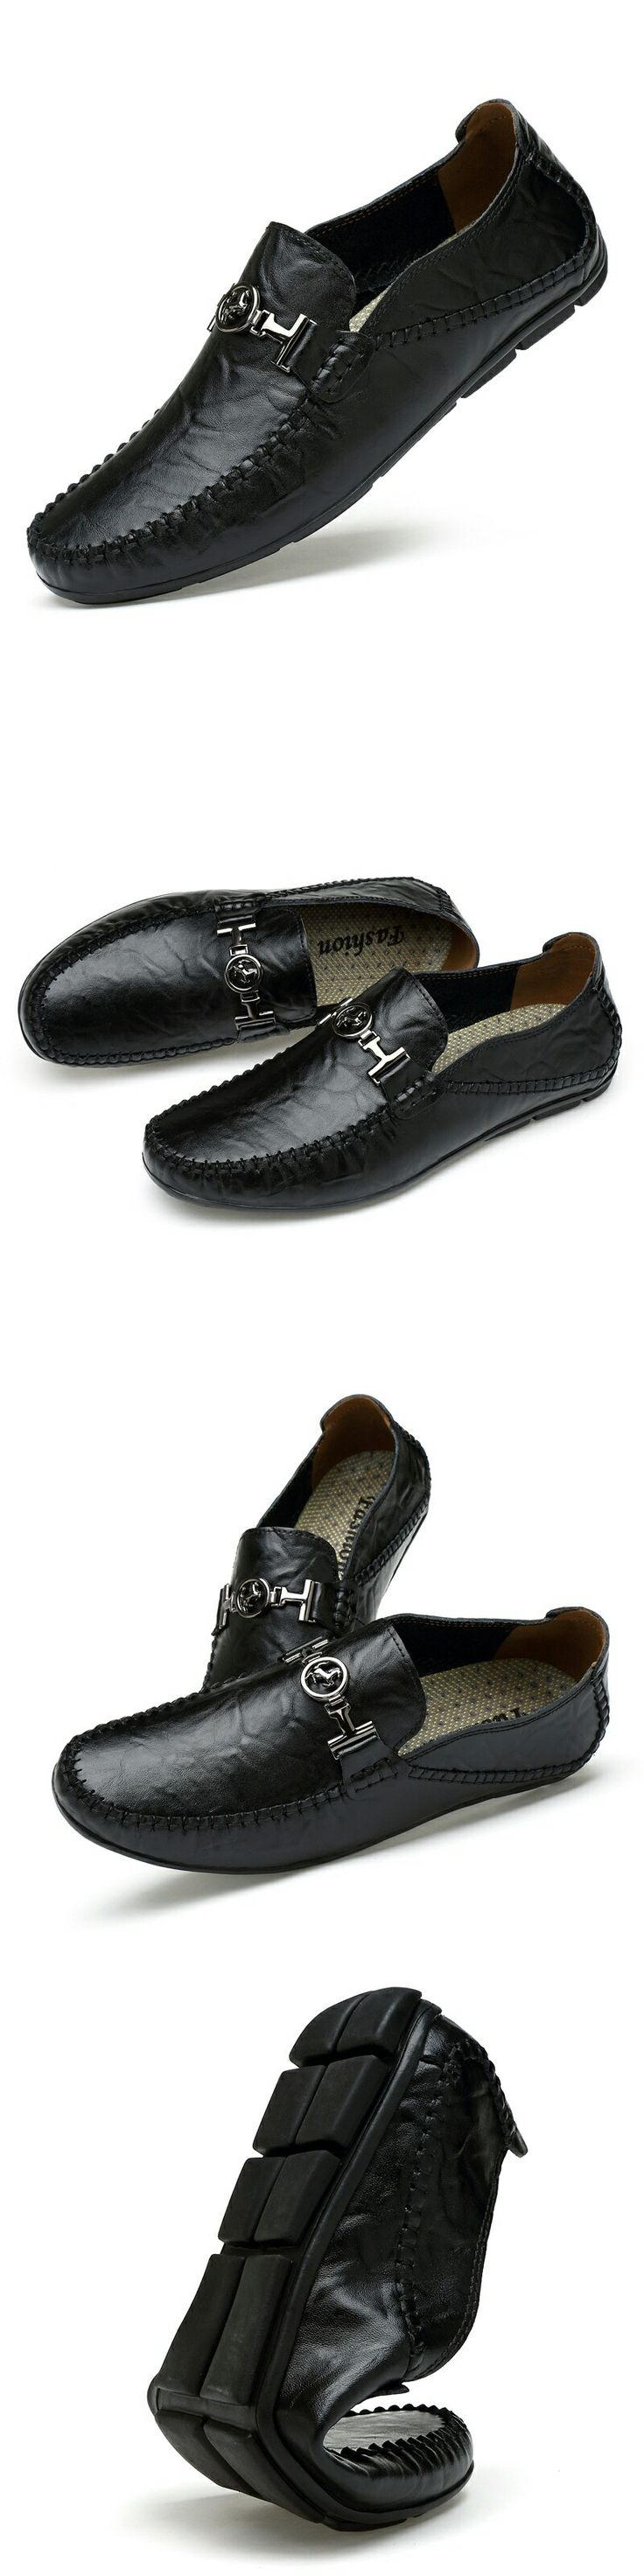 shoes style tone most new at men mens vintagedancer comforter comfortable two wing medallion oxfords tip for dress brogue